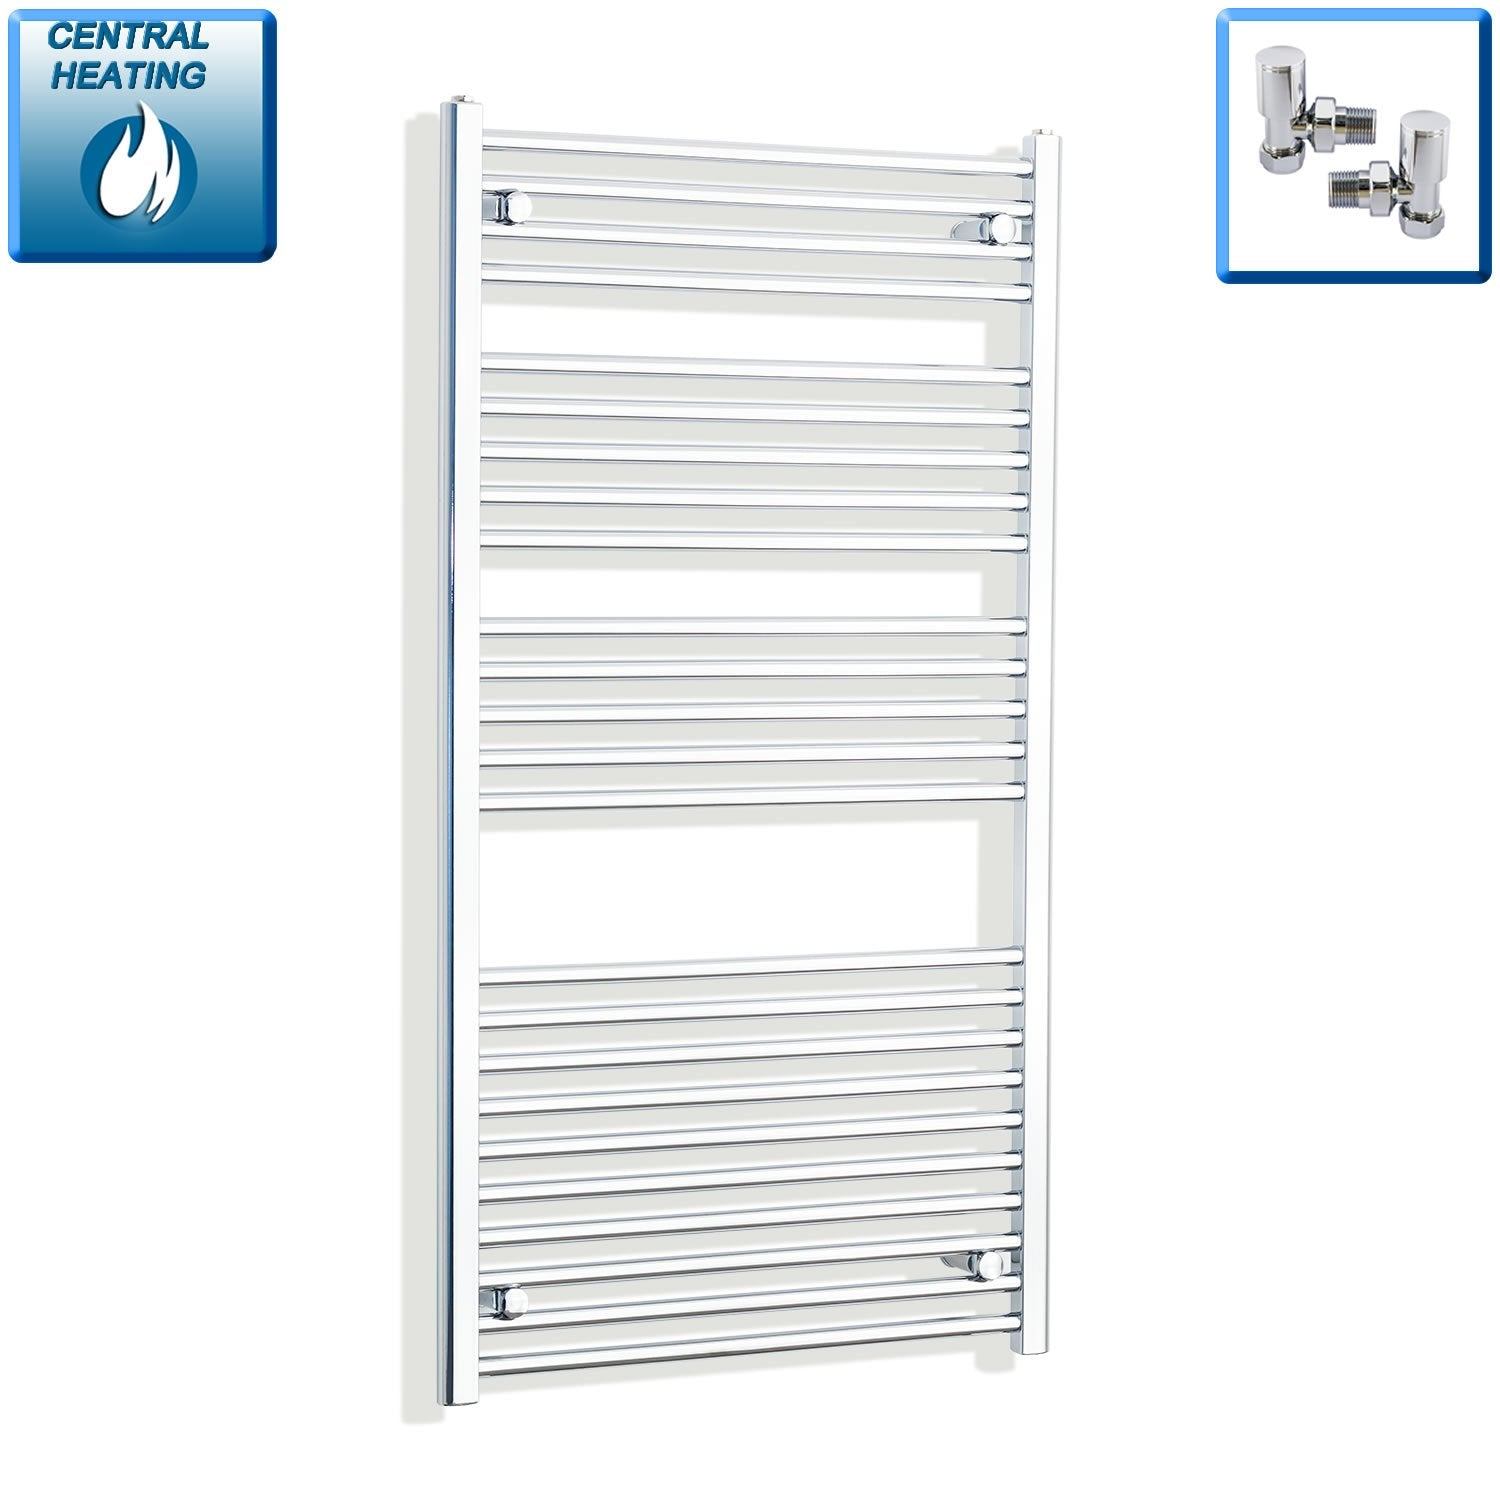 700mm Wide 1300mm High Curved Chrome Heated Towel Rail Radiator HTR,With Angled Valve